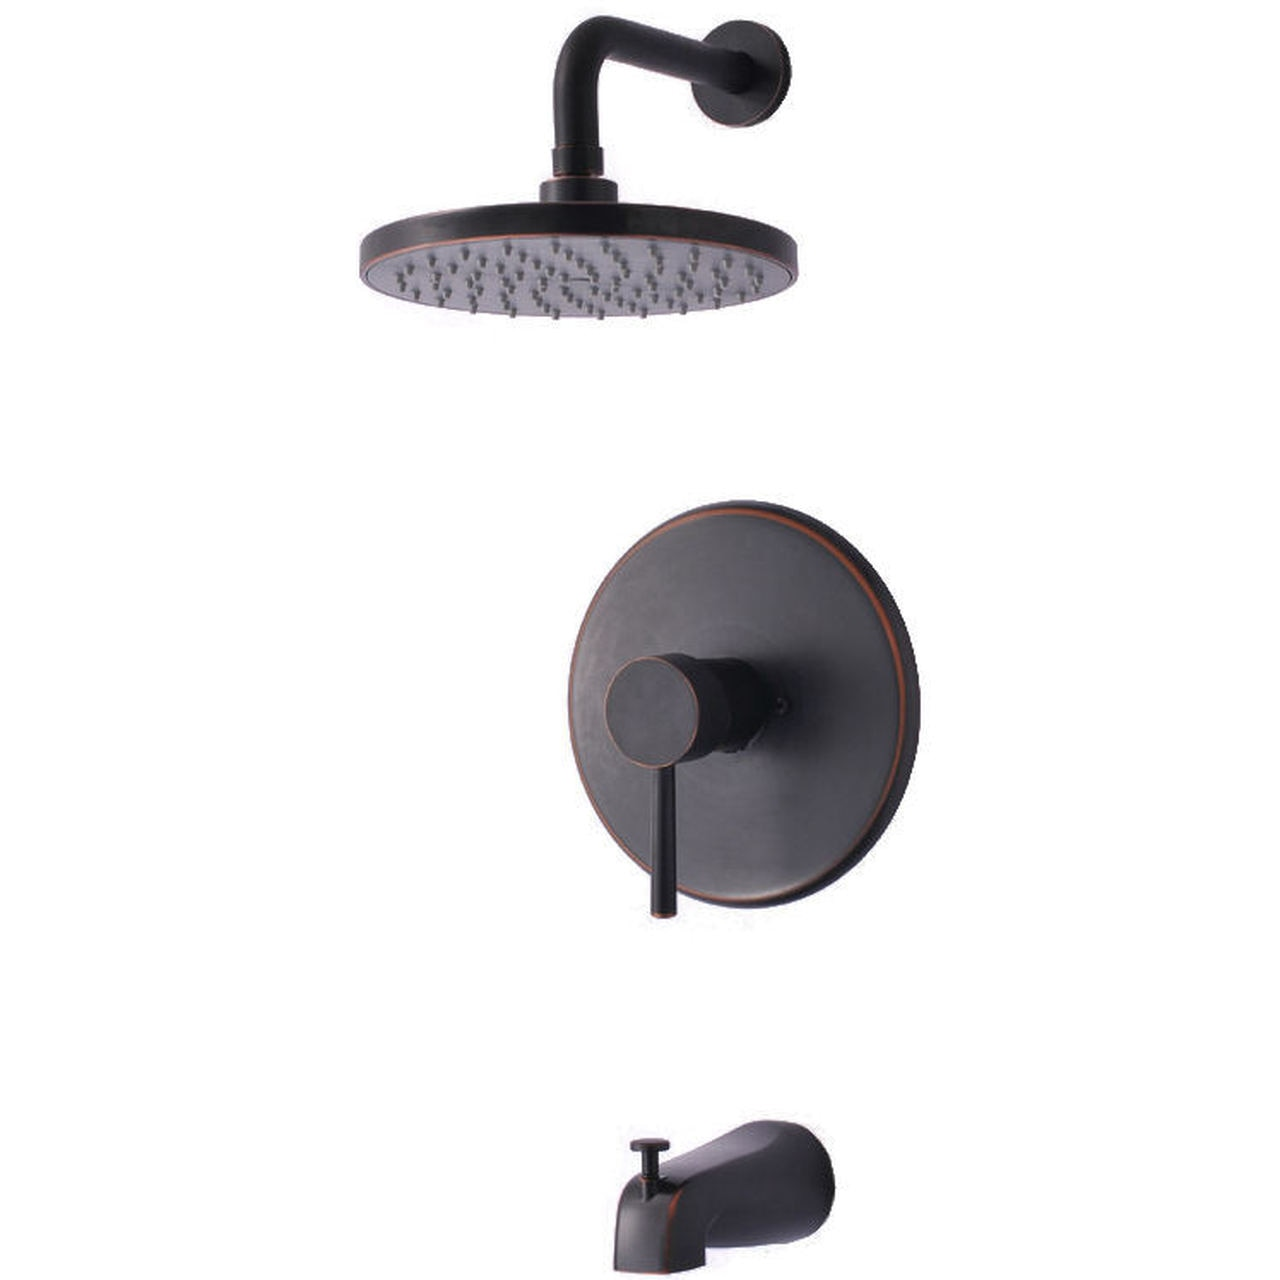 Hardware House 13-5474 Oil Rubbed Bronze Tub / Shower Combo Faucet